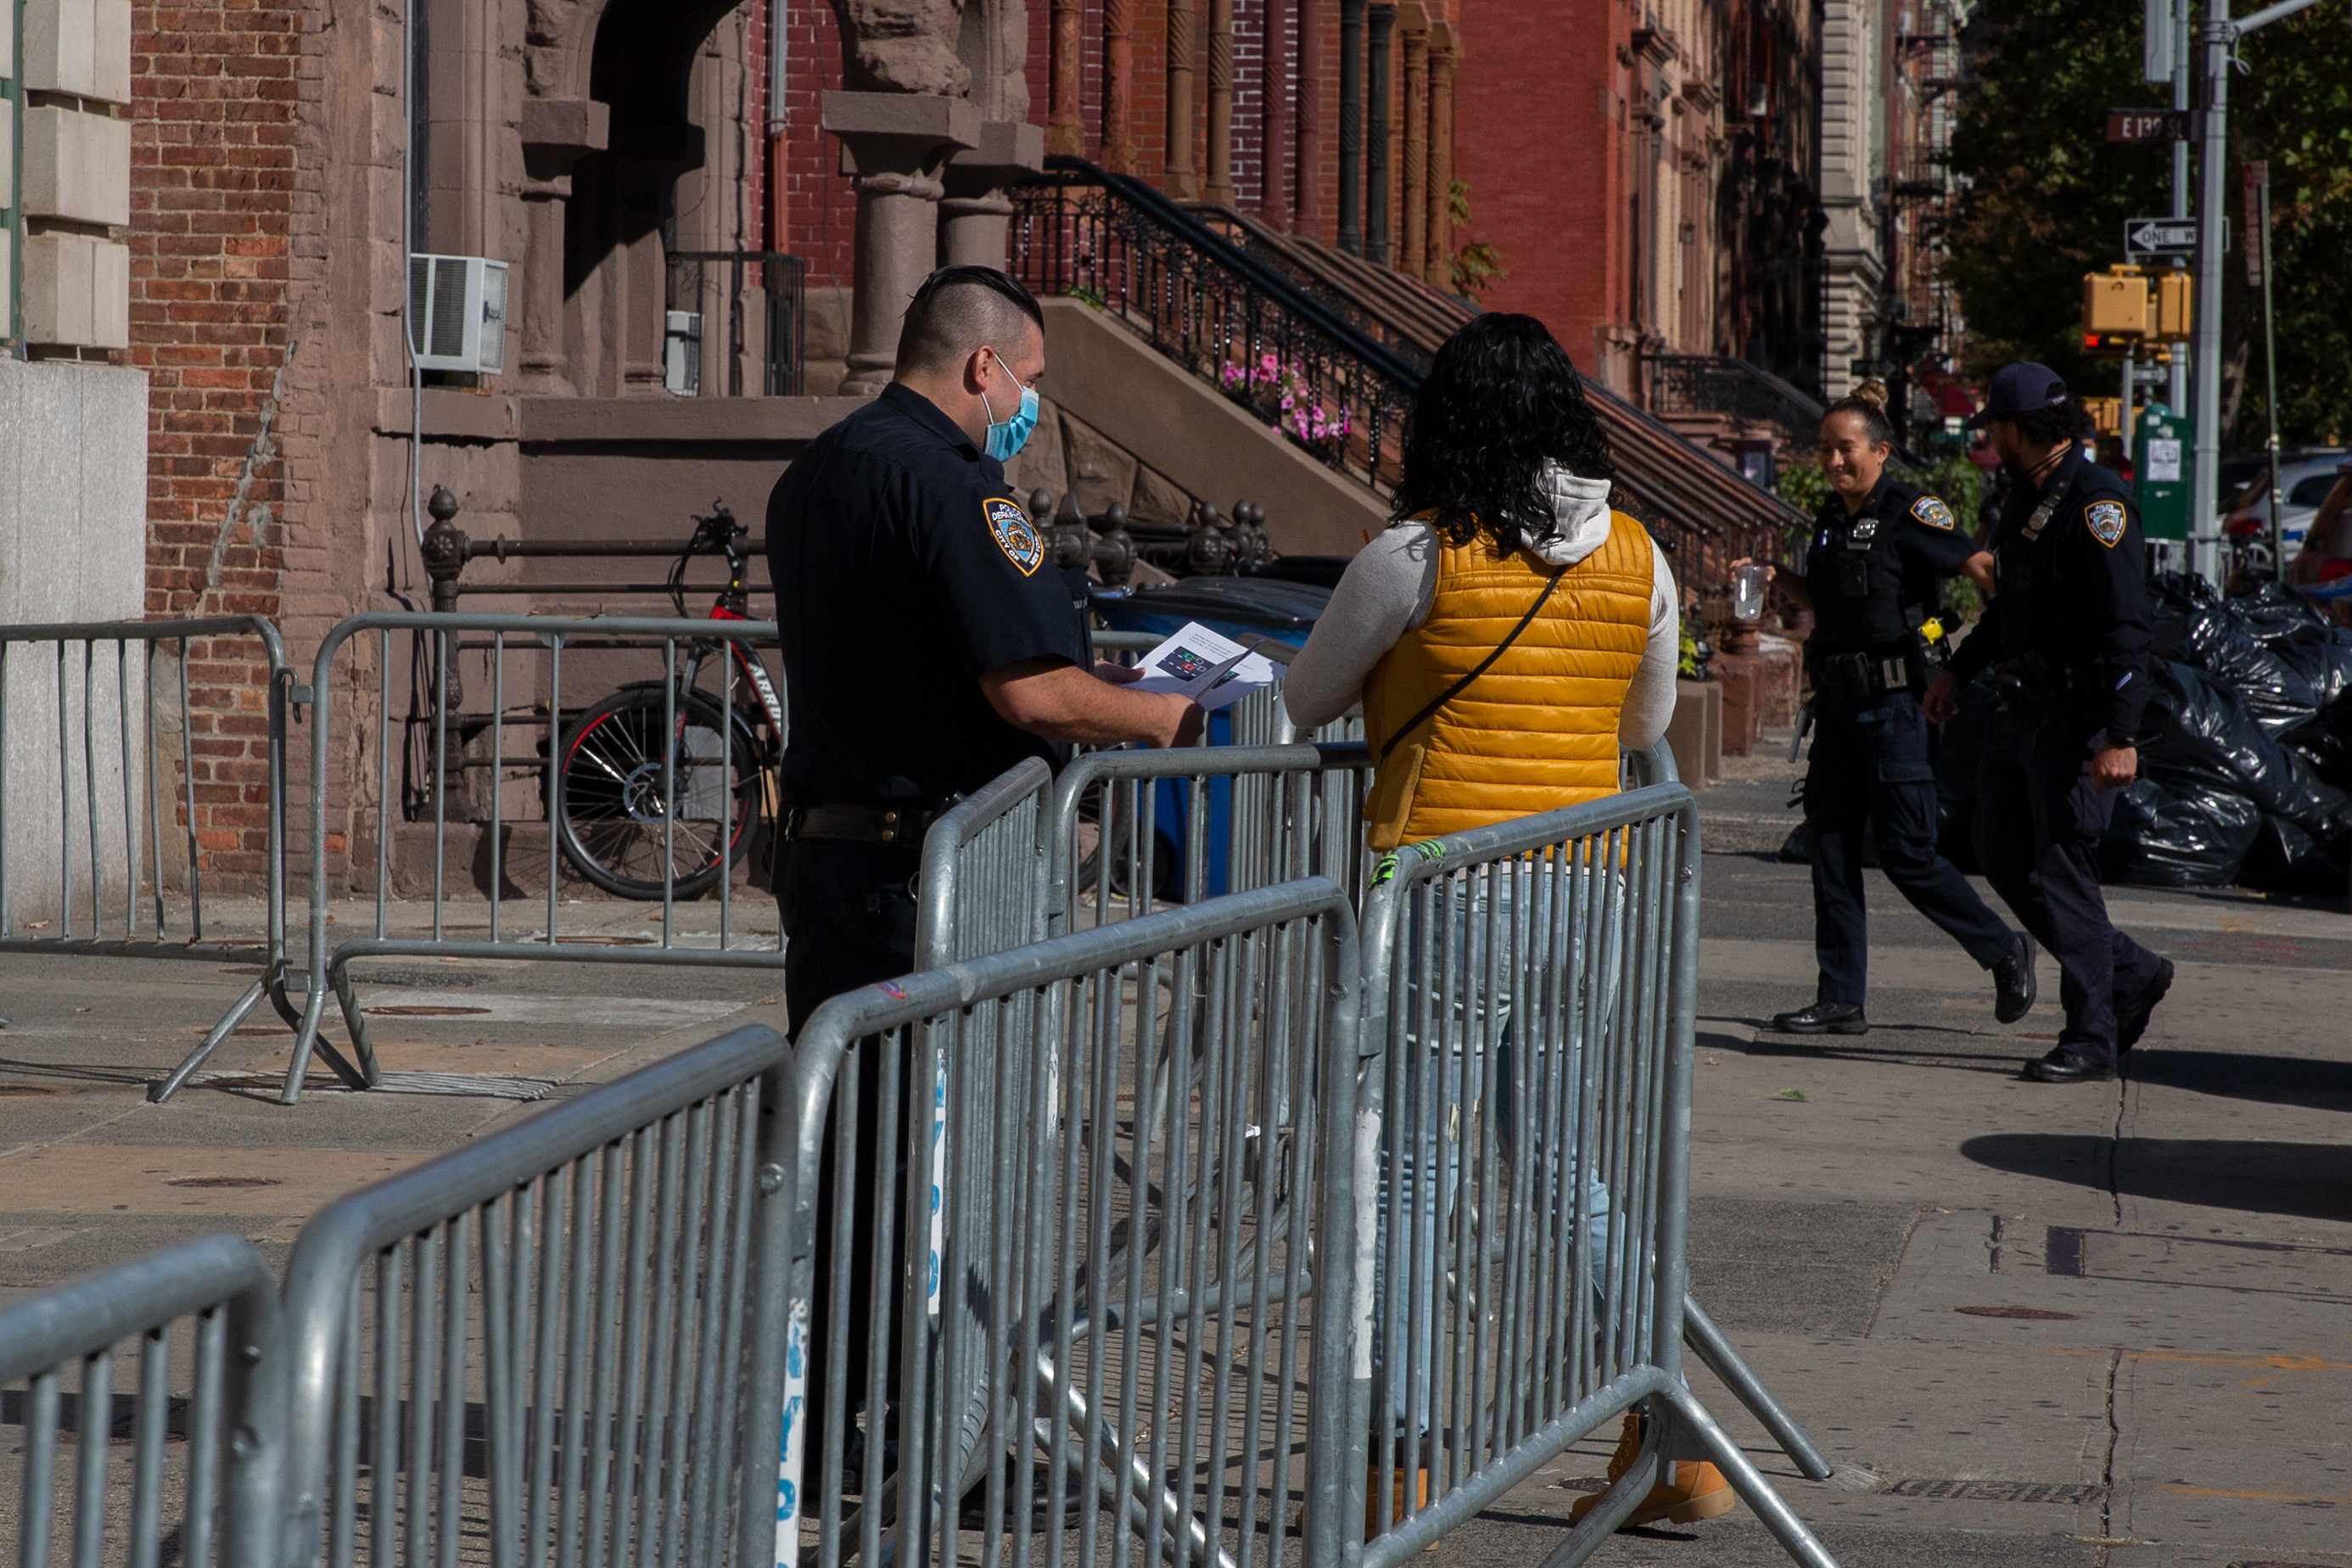 An NYPD officer speaks with a woman outside the 40th Precinct in the South Bronx, Oct. 15, 2020.